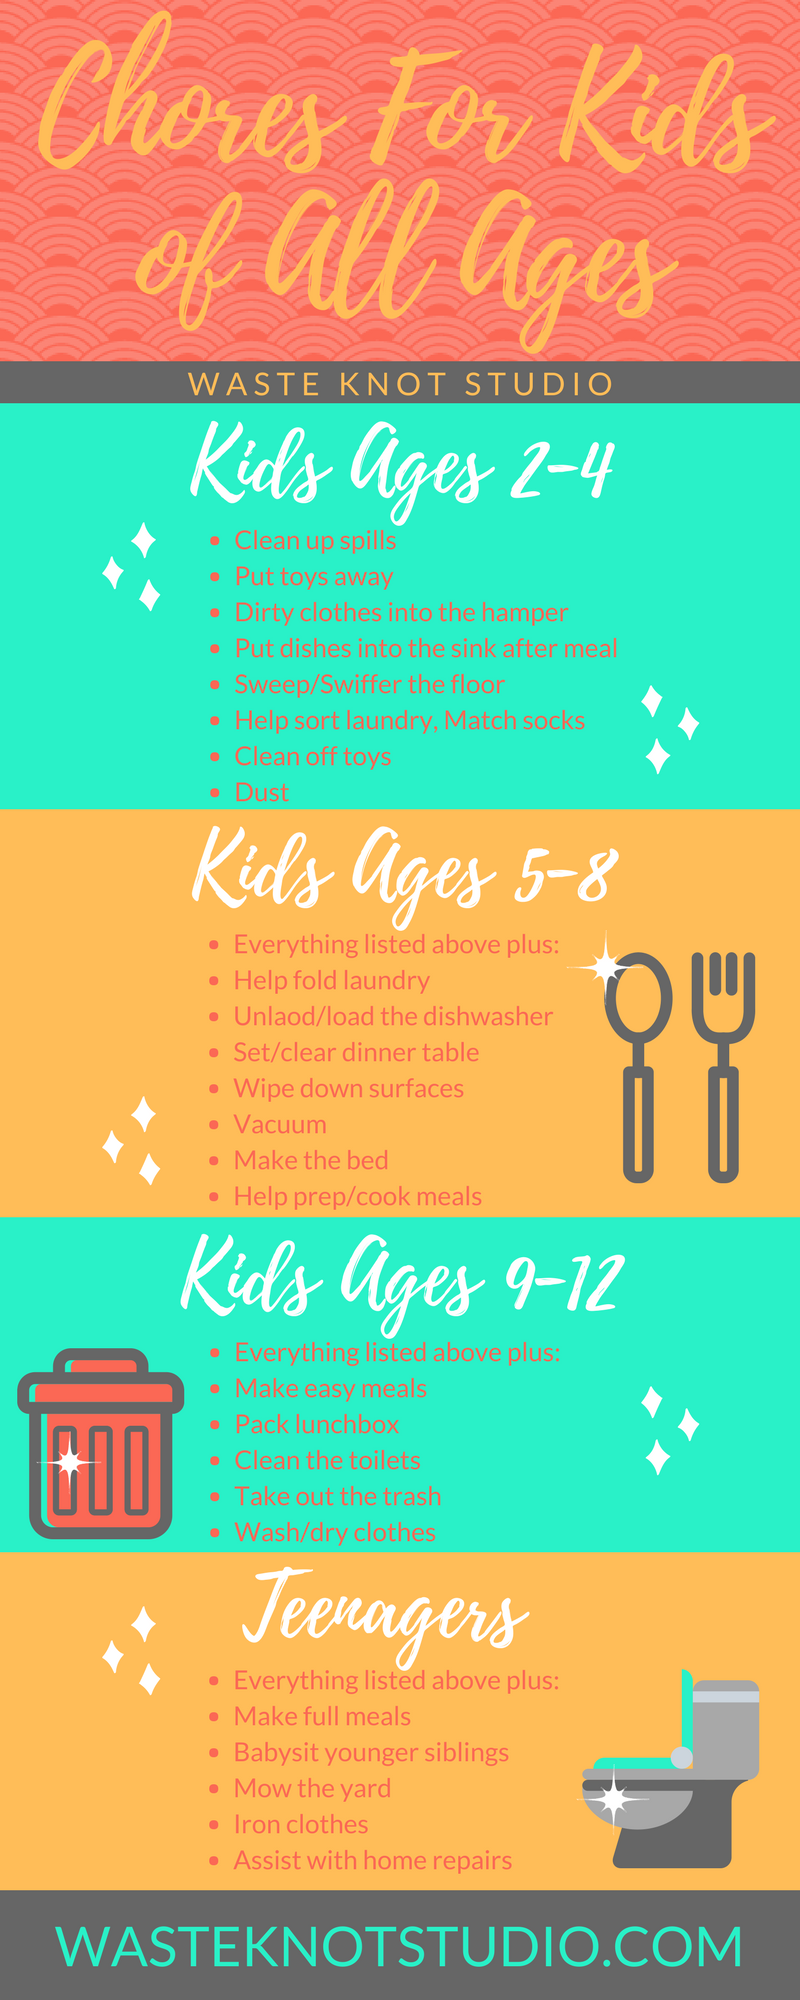 Chores for kids of all ages